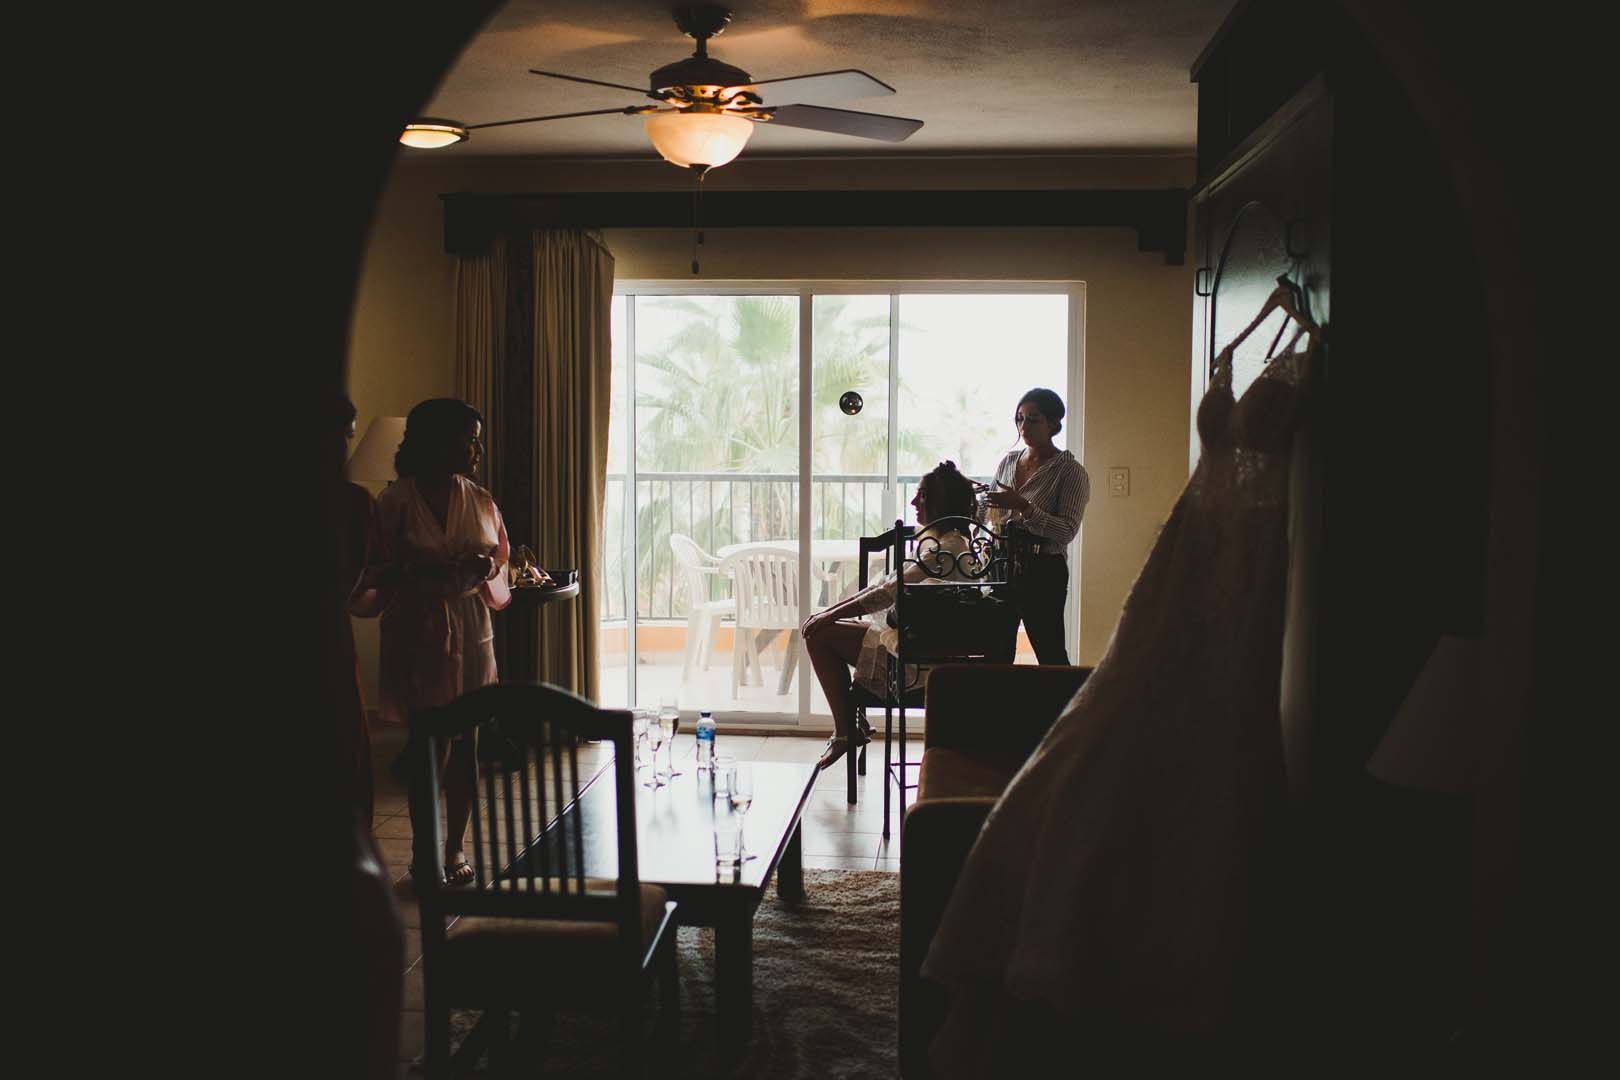 Paparazi shot of Bride getting her Hair + Makeup on her Wedding Day by Bri Berliner. She was getting ready in her hotel room at Villa del Palmar, in Los Cabos, Mexico.